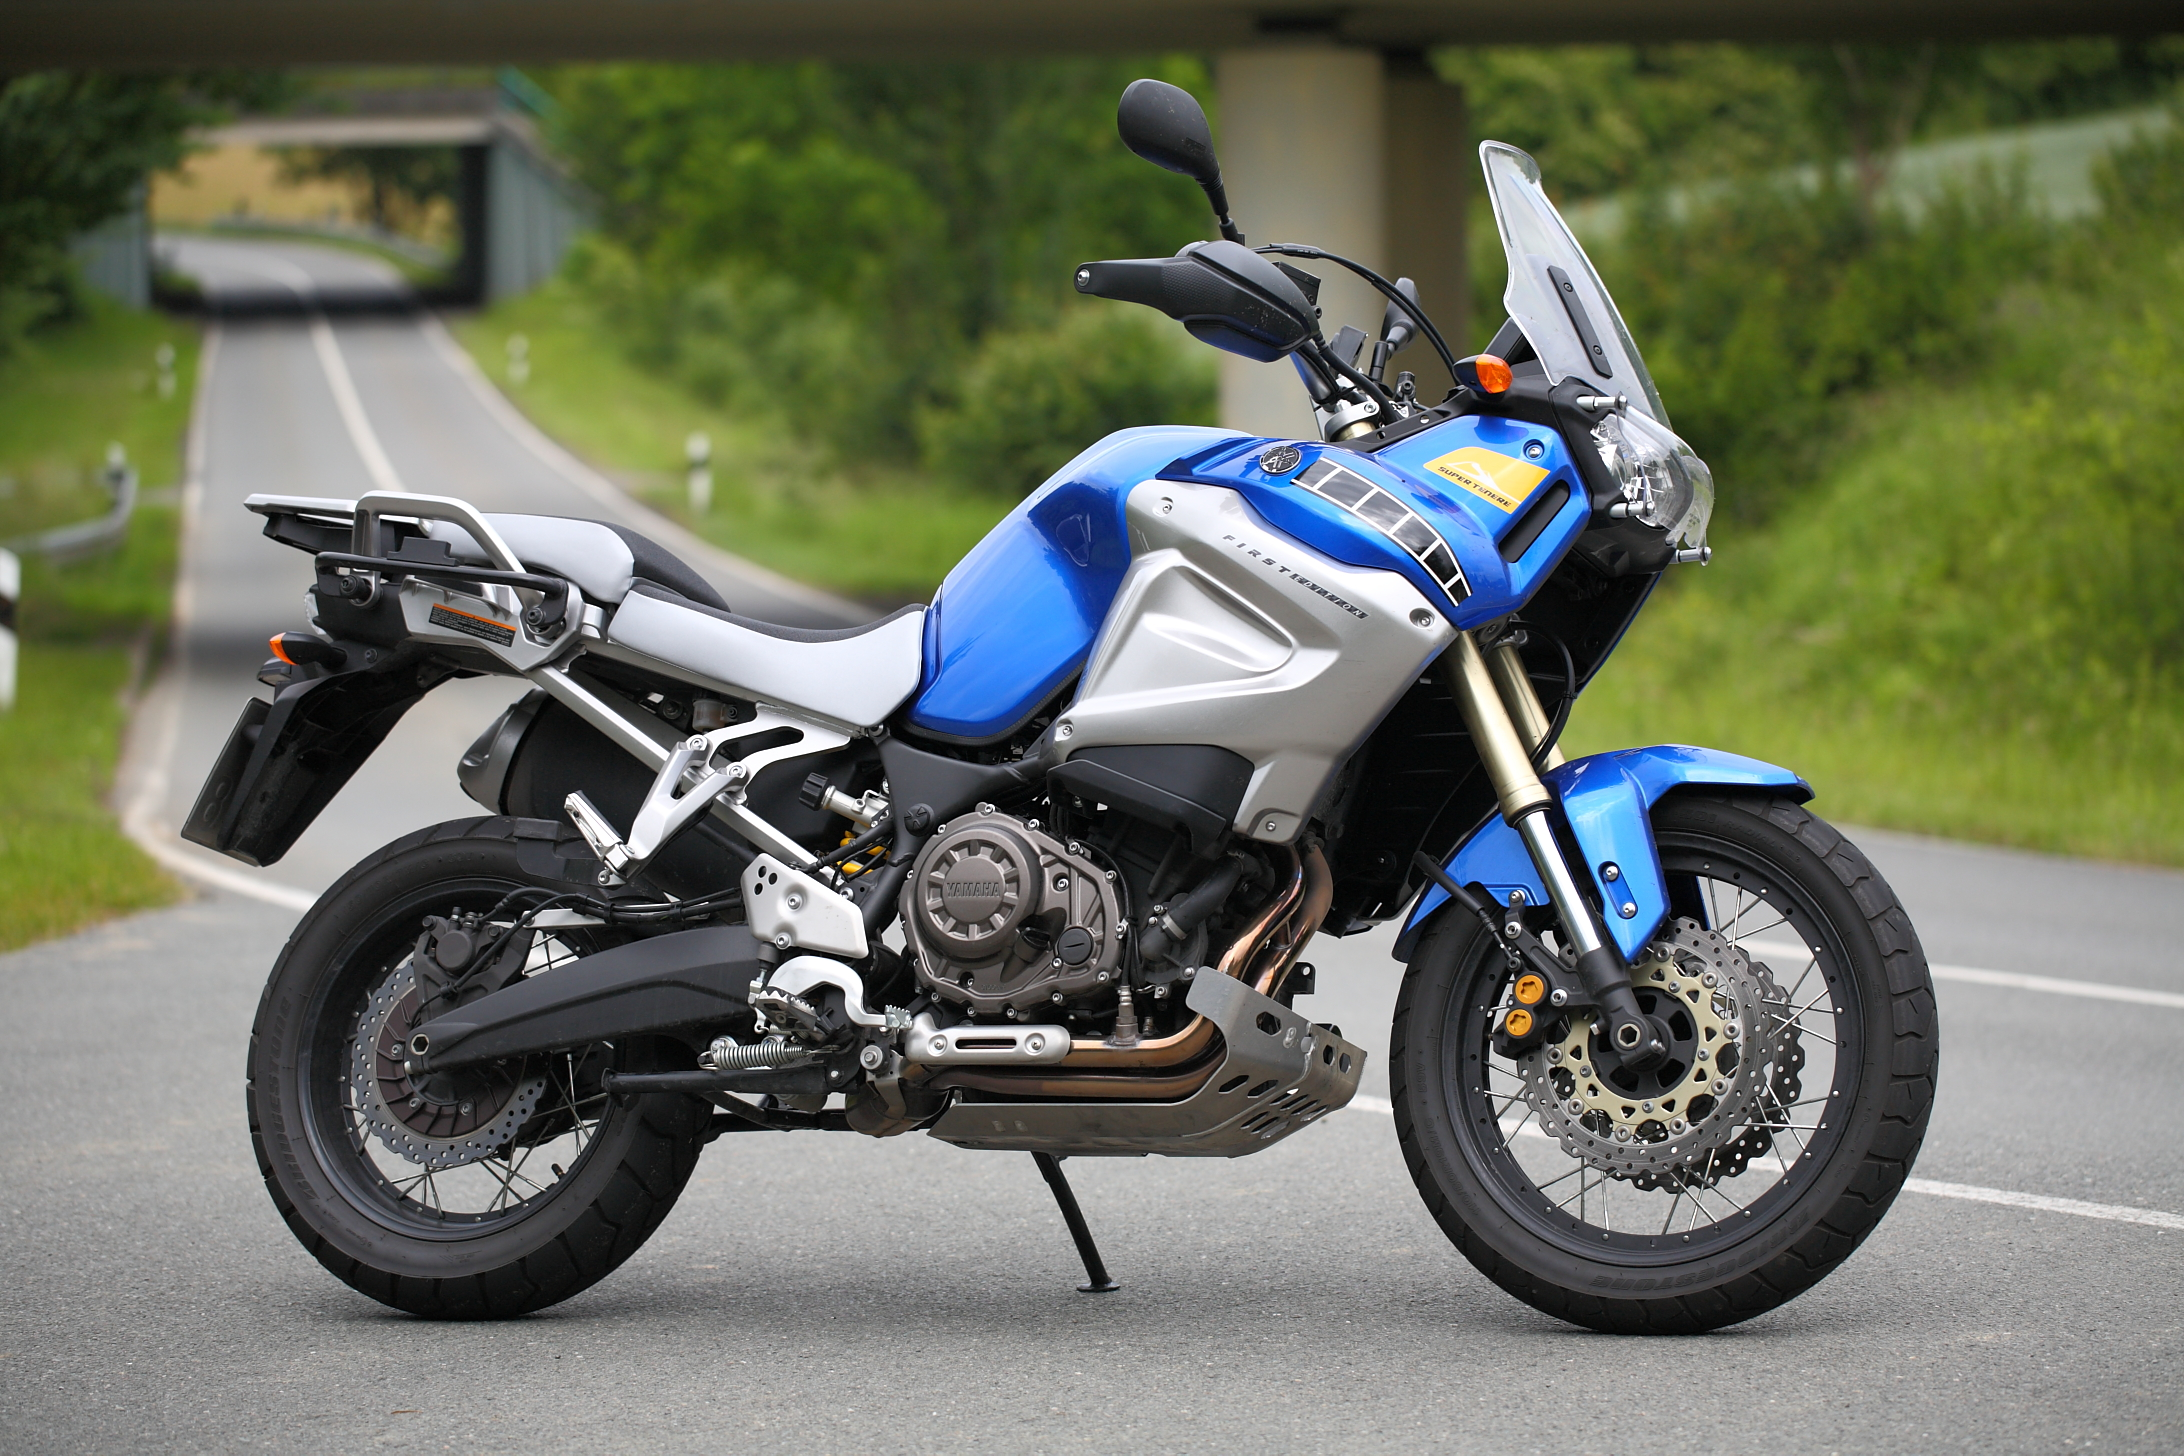 Yamaha XT 1200 Z SUPER TENERE Silver One owner SAVE £200